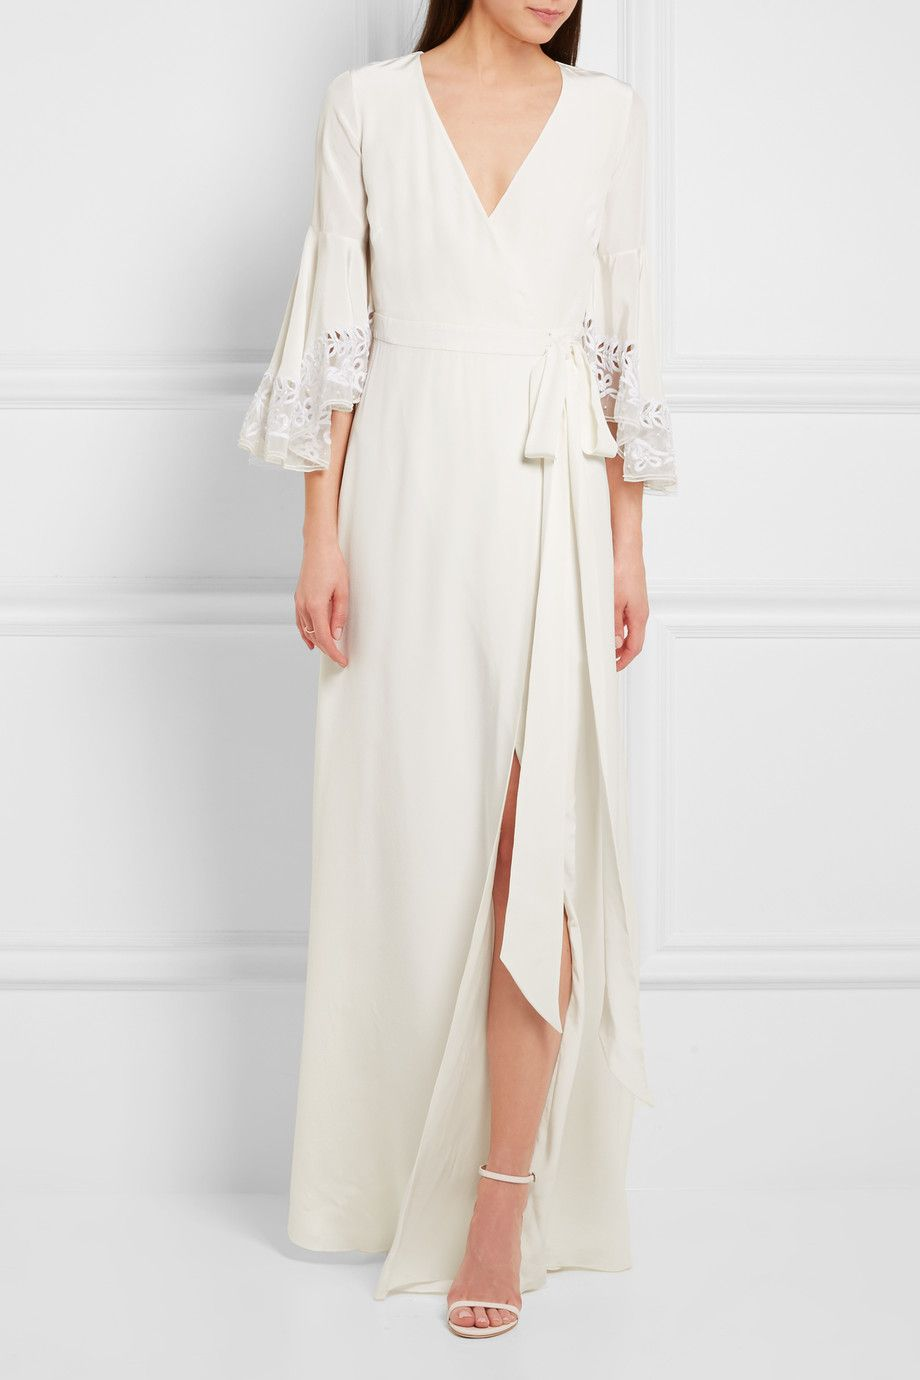 Rosemary Embroidered Tulle-trimmed Silk Crepe De Chine Gown - White Temperley London 8n1oxIQC